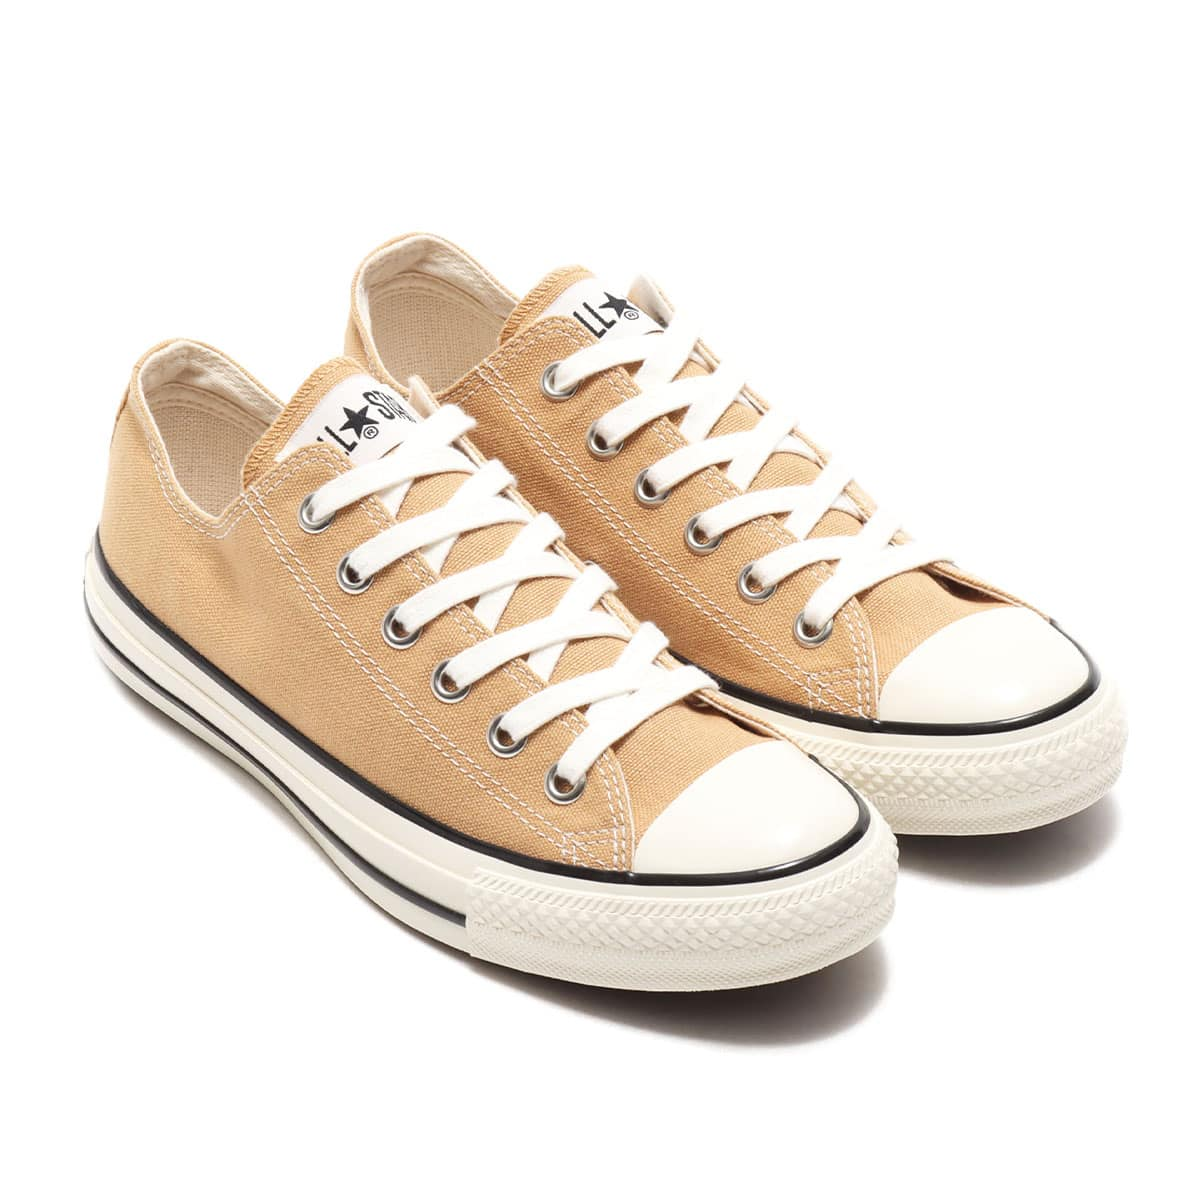 CONVERSE ALL STAR US COLORS OX CAMEL 20FW-I_photo_large